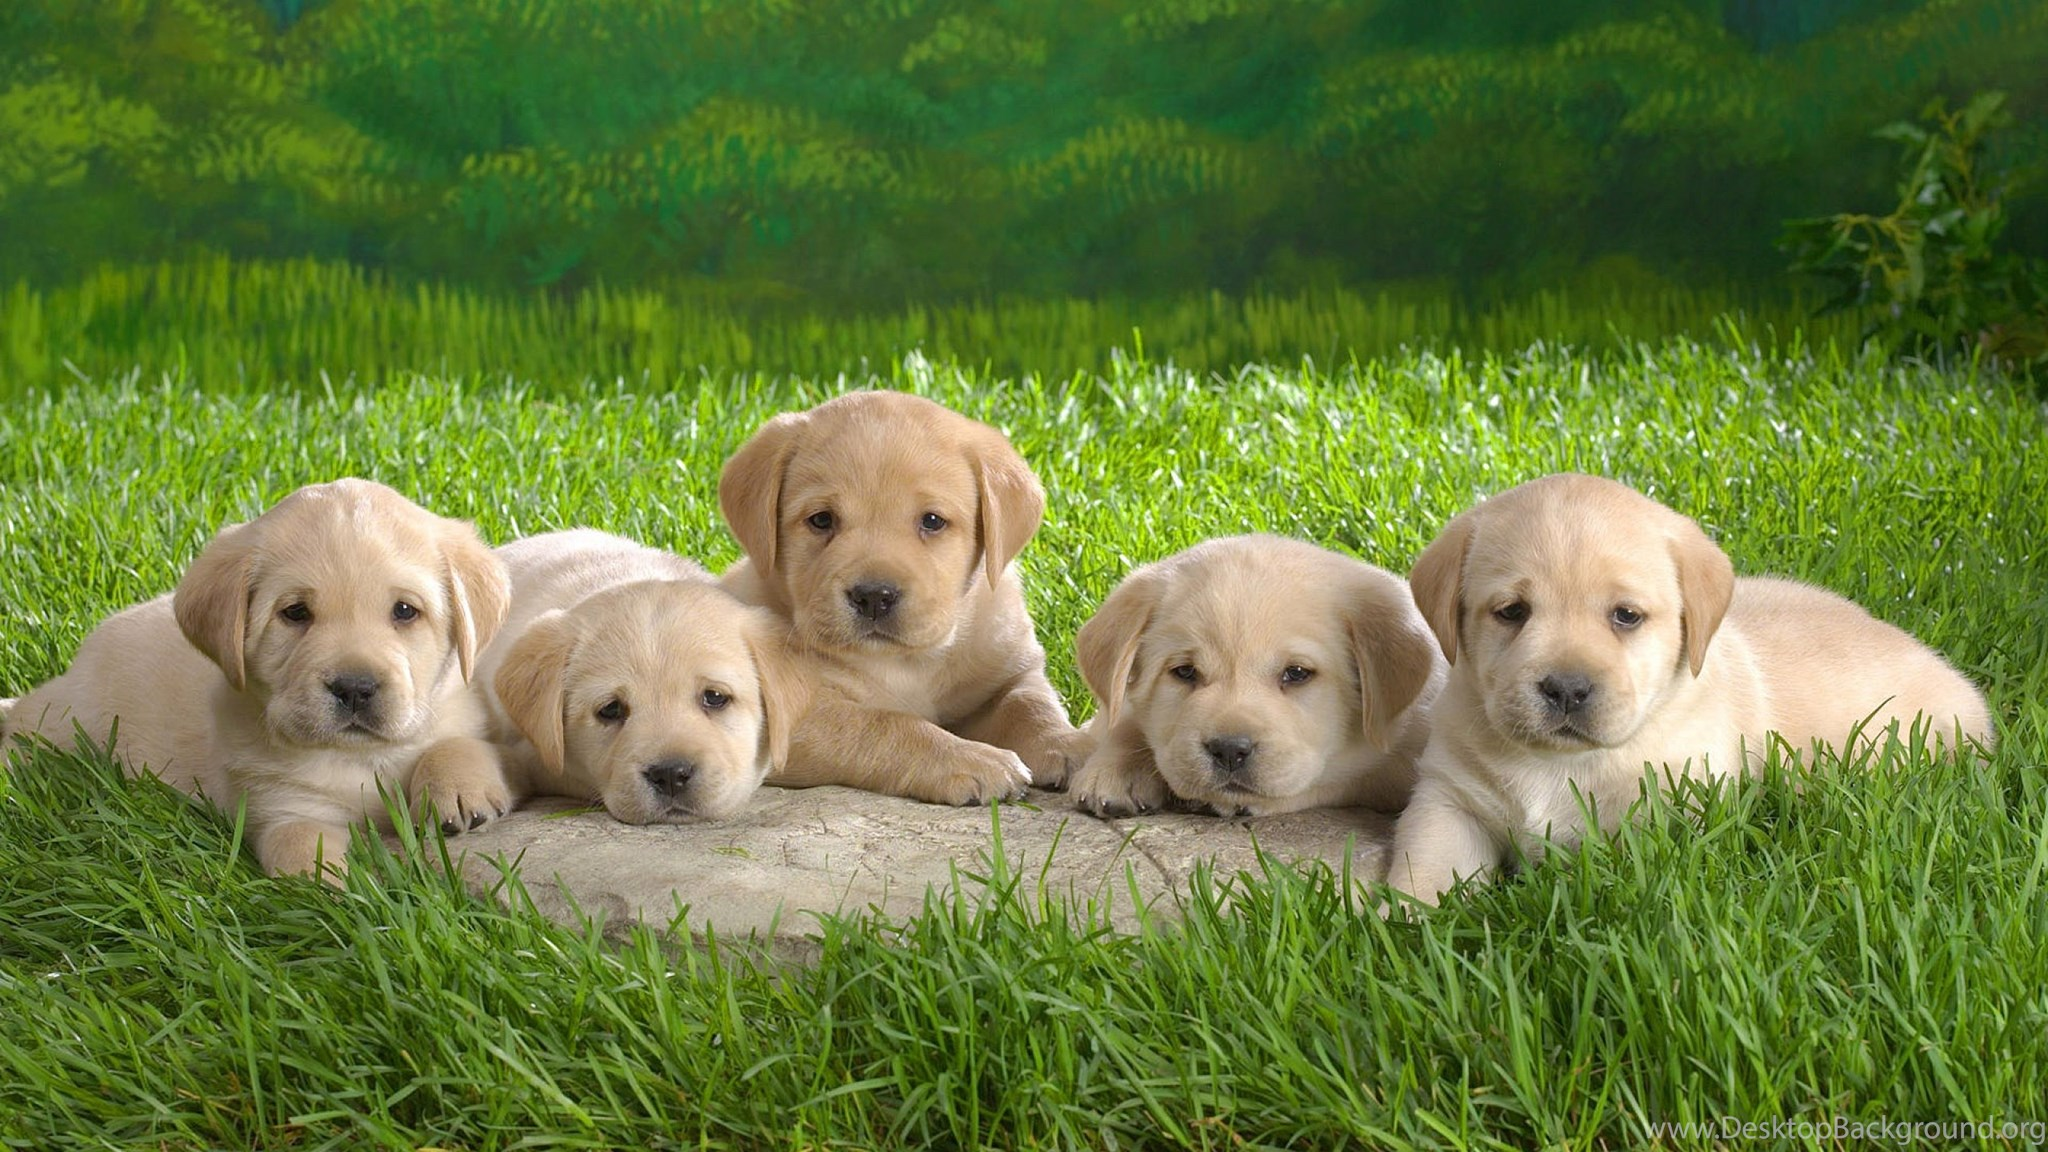 Desktop Hd Cute Puppy Wallpapers Free Download 3d Pictures